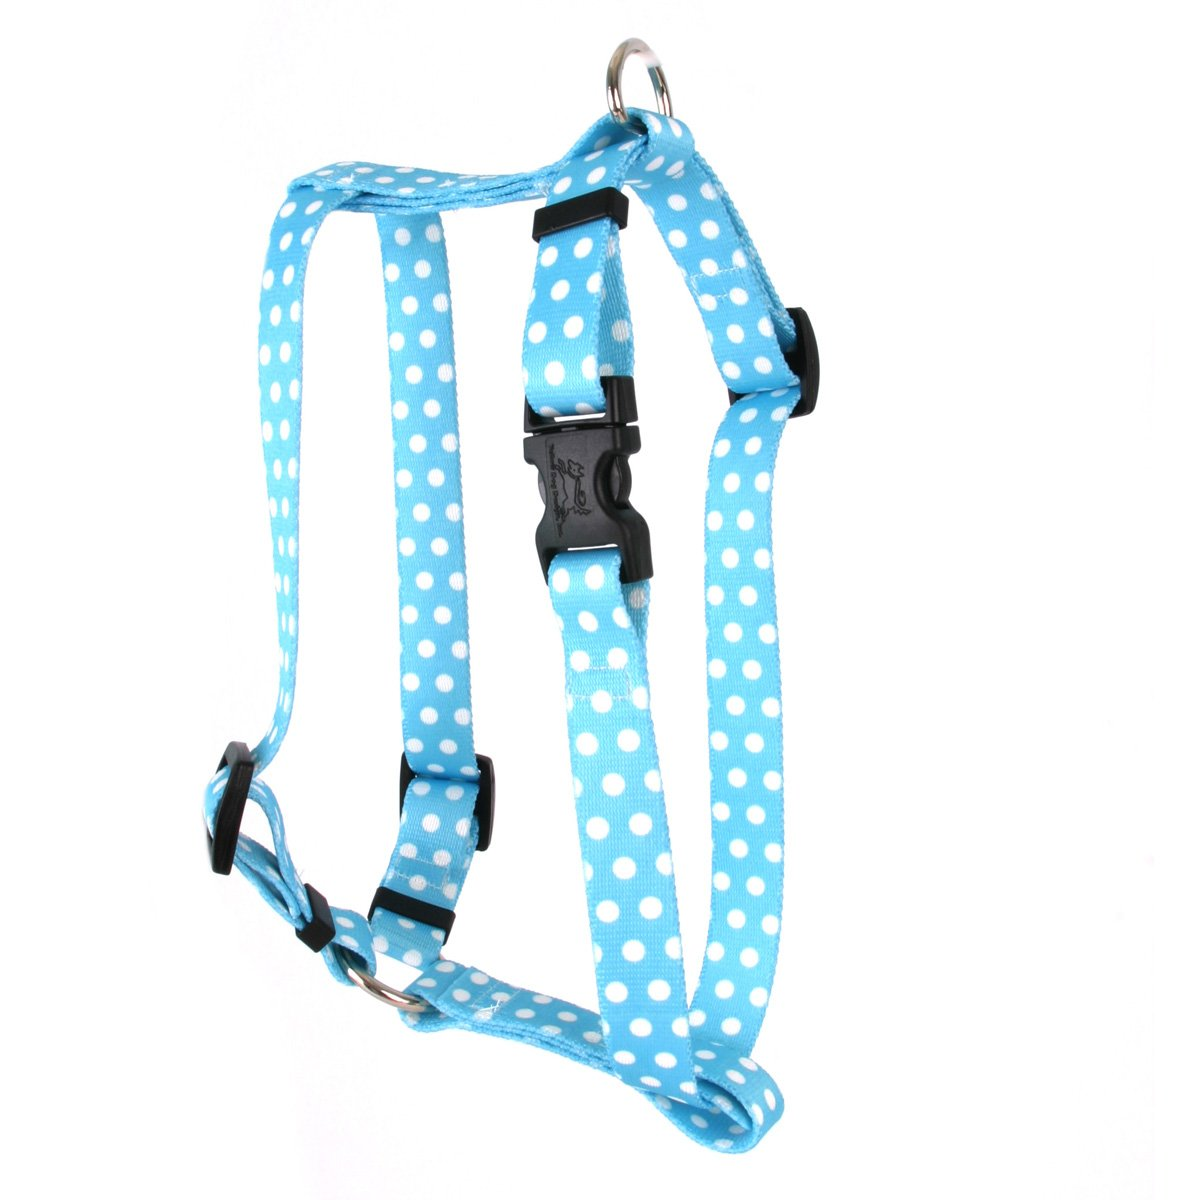 Yellow Dog Design New Blue Polka Dot Roman Style H Dog Harness, Large-1'' Wide and fits Chest of 20 to 28''